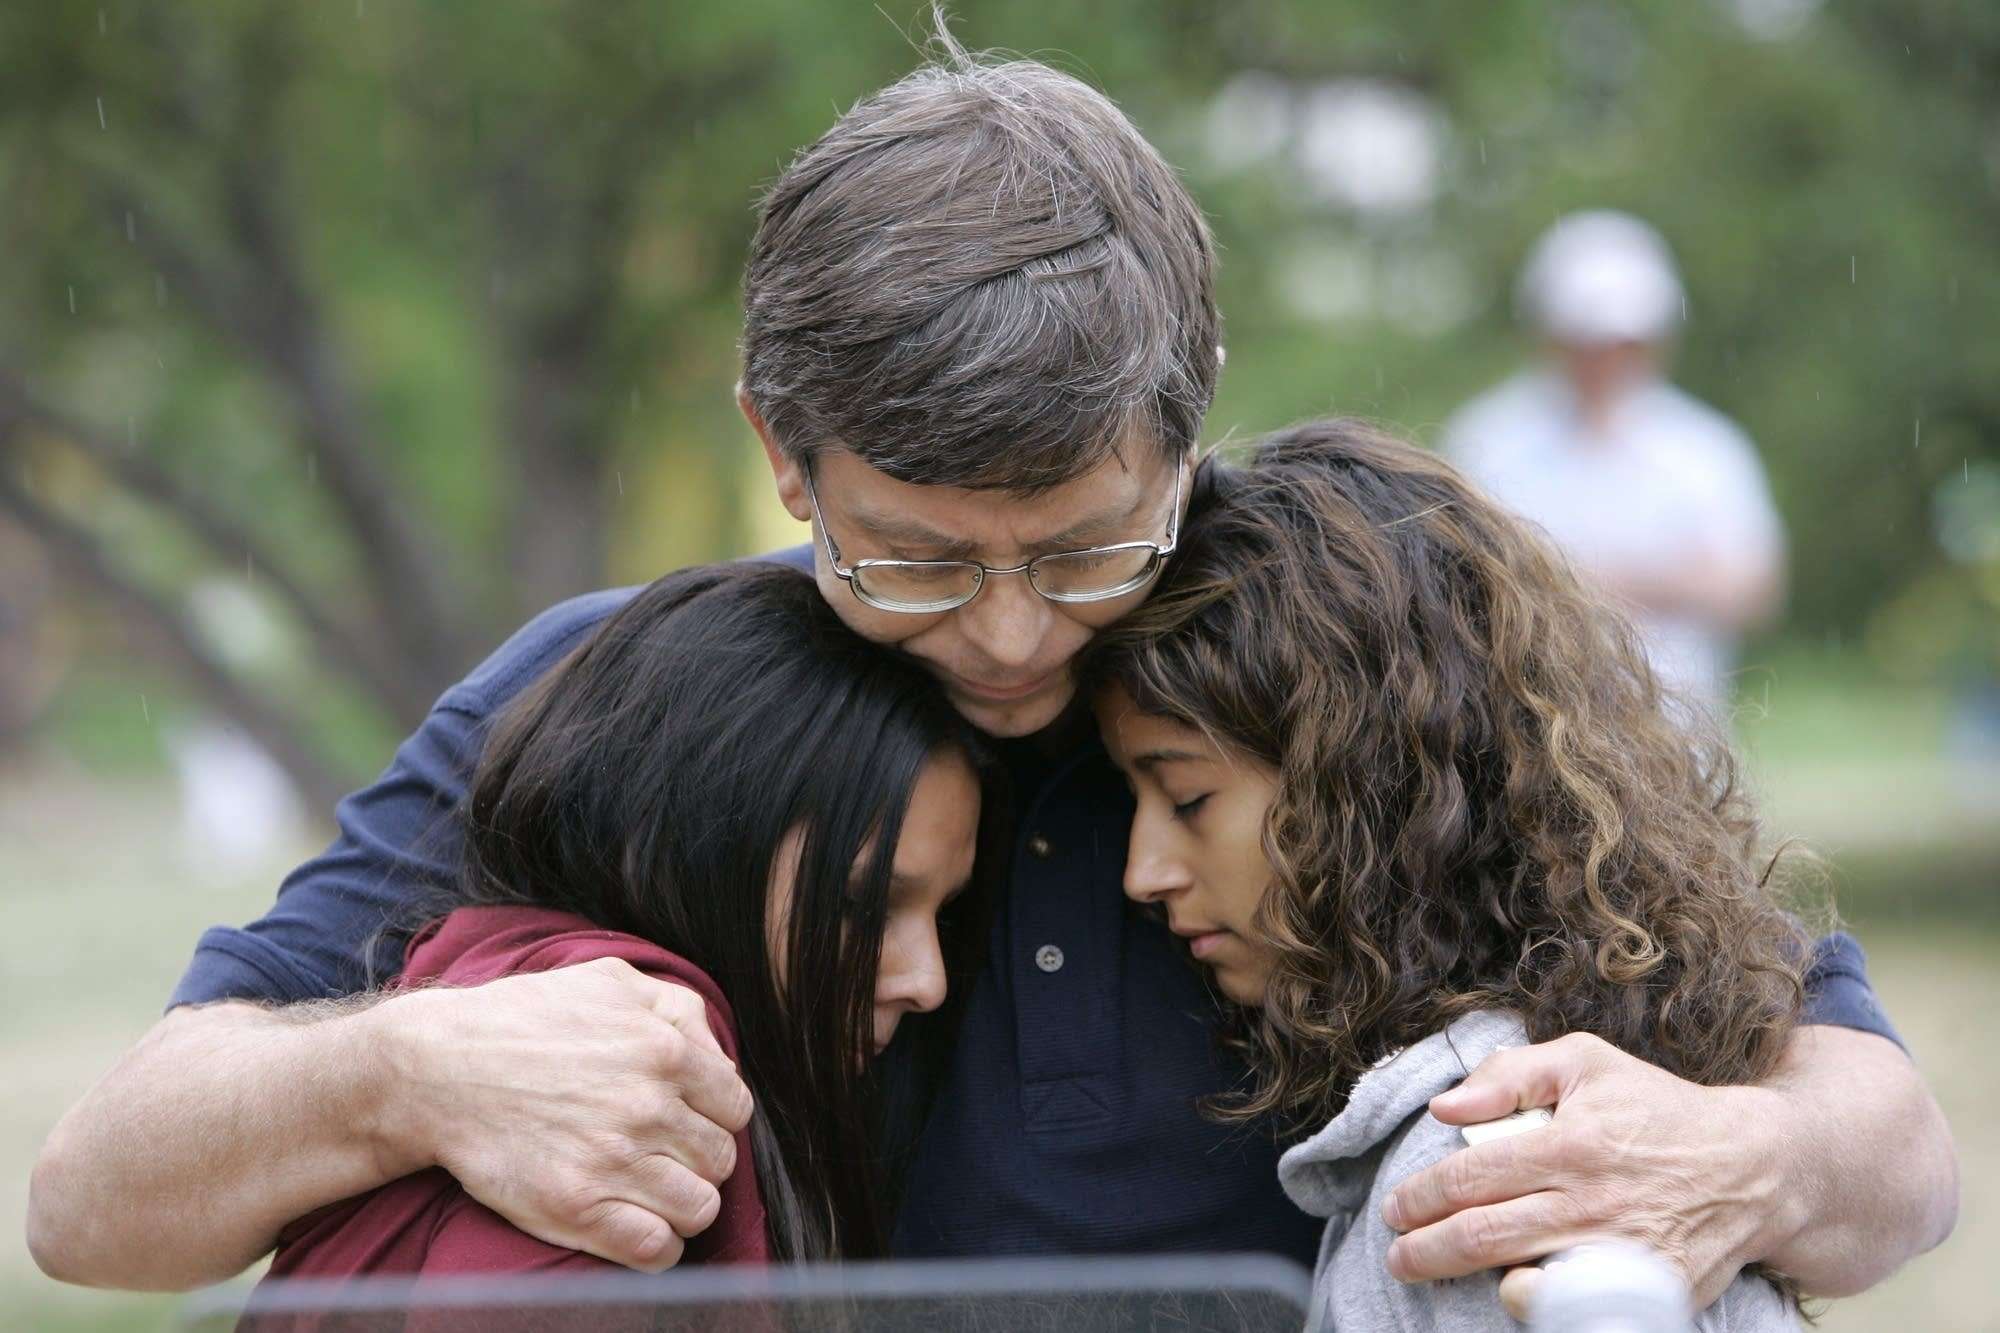 Ron Engebretsen hugs his daughters. His wife died in the bridge collapse.